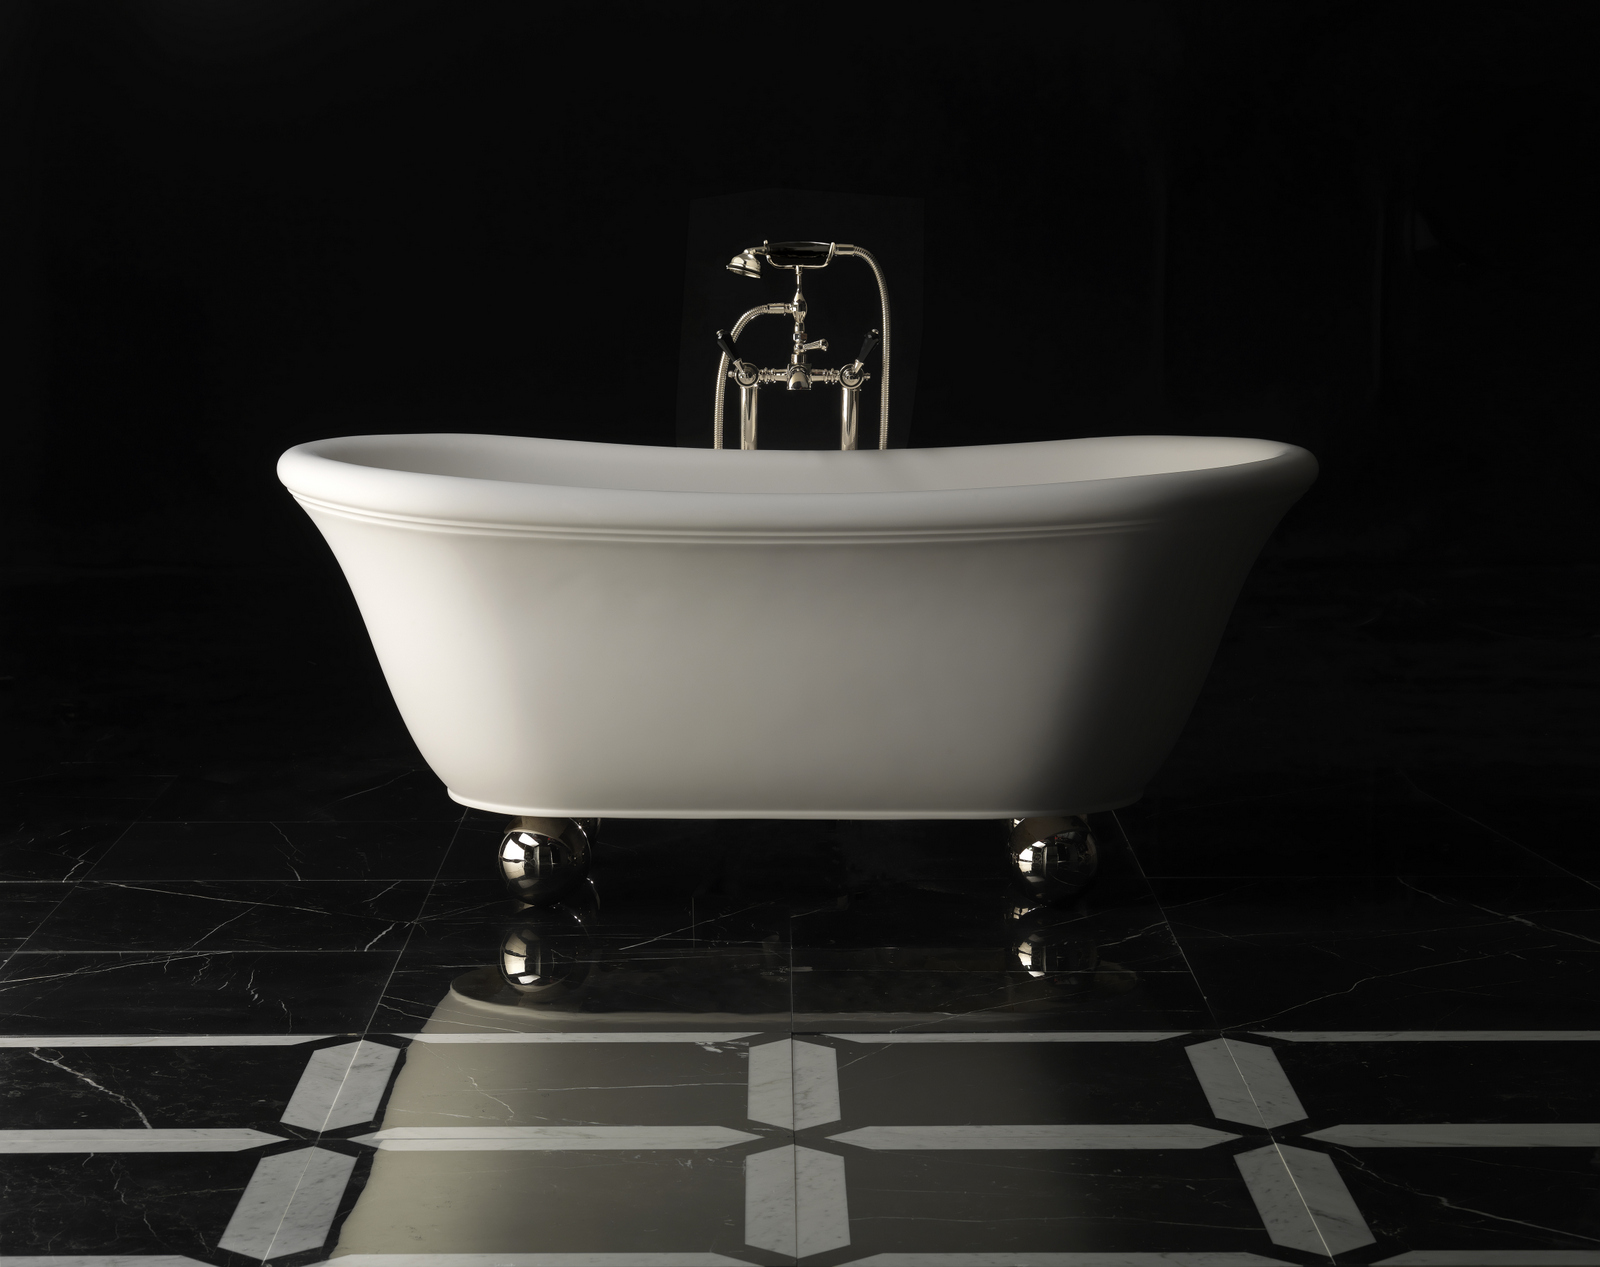 classic style bathtub on legs aurora bijoux by devon devon. Black Bedroom Furniture Sets. Home Design Ideas